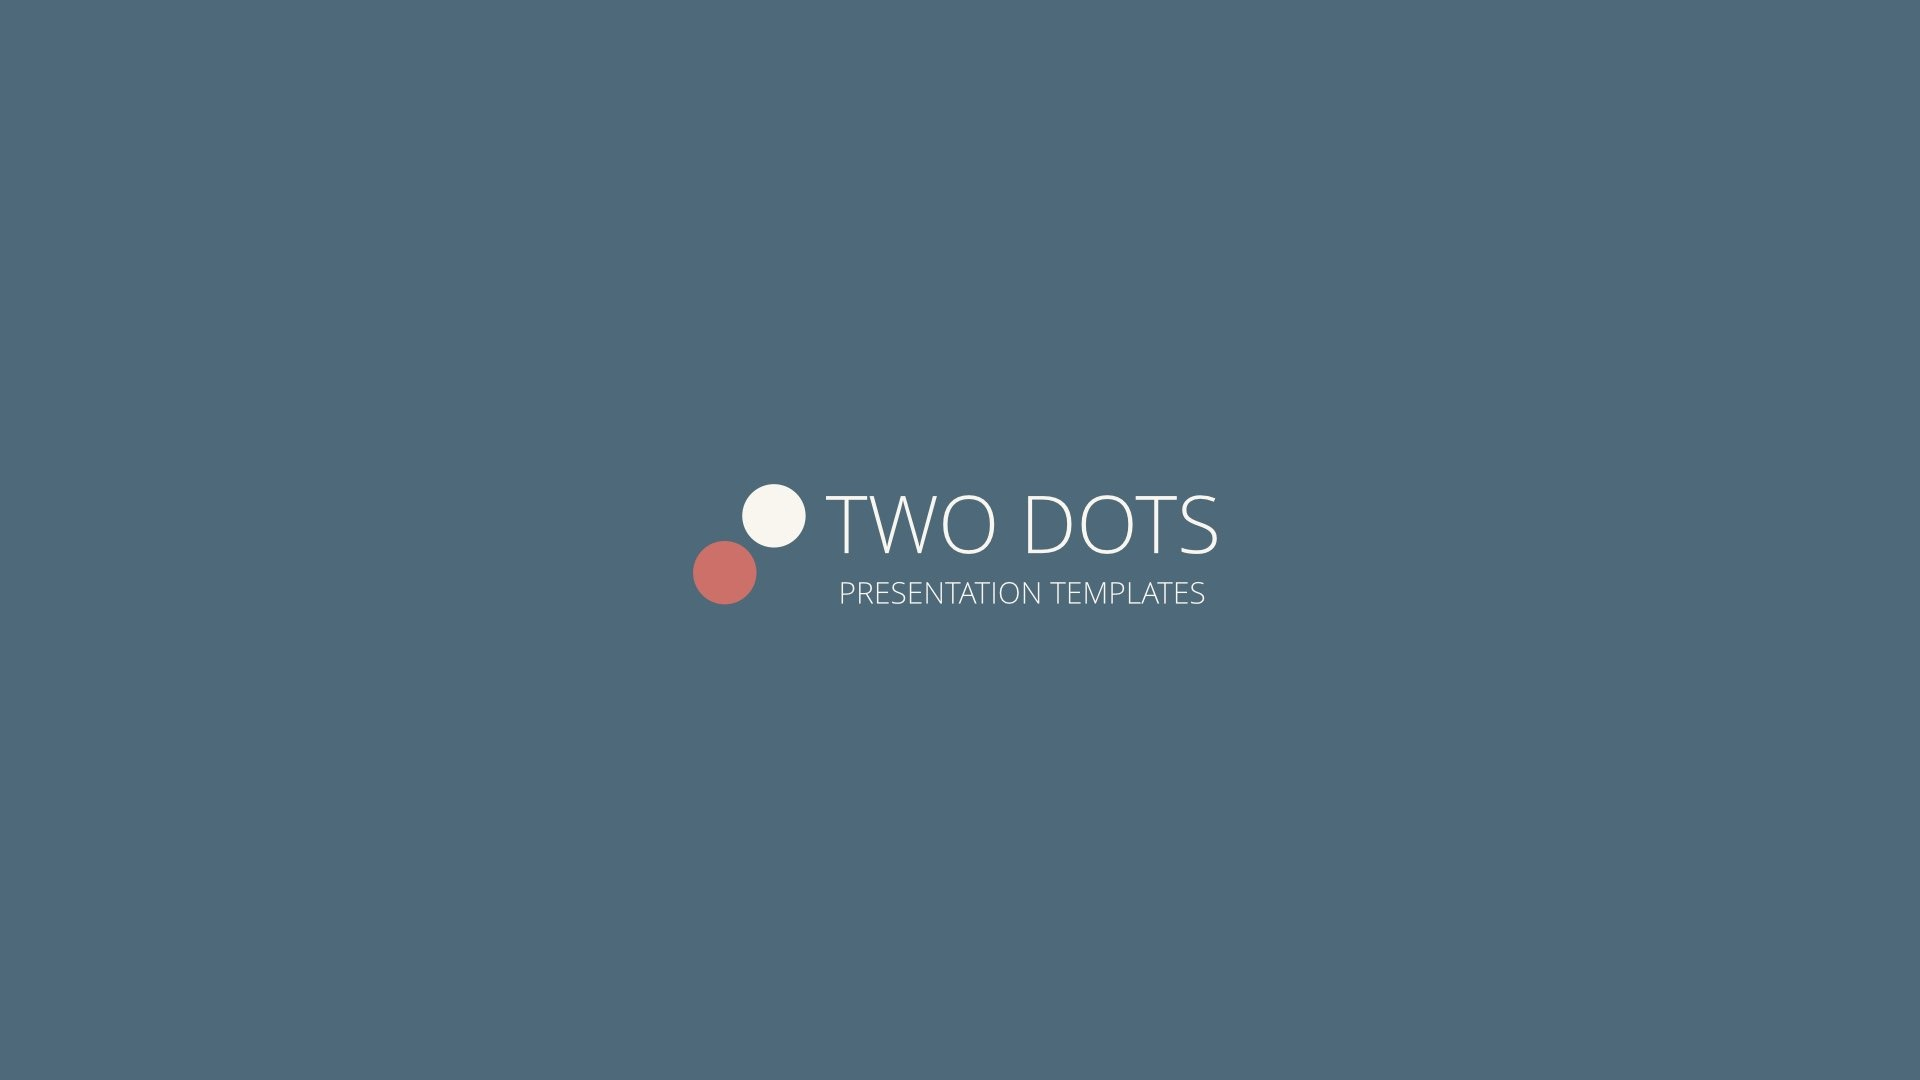 two dots powerpoint presentation templateshexagonpixel, Presentation templates